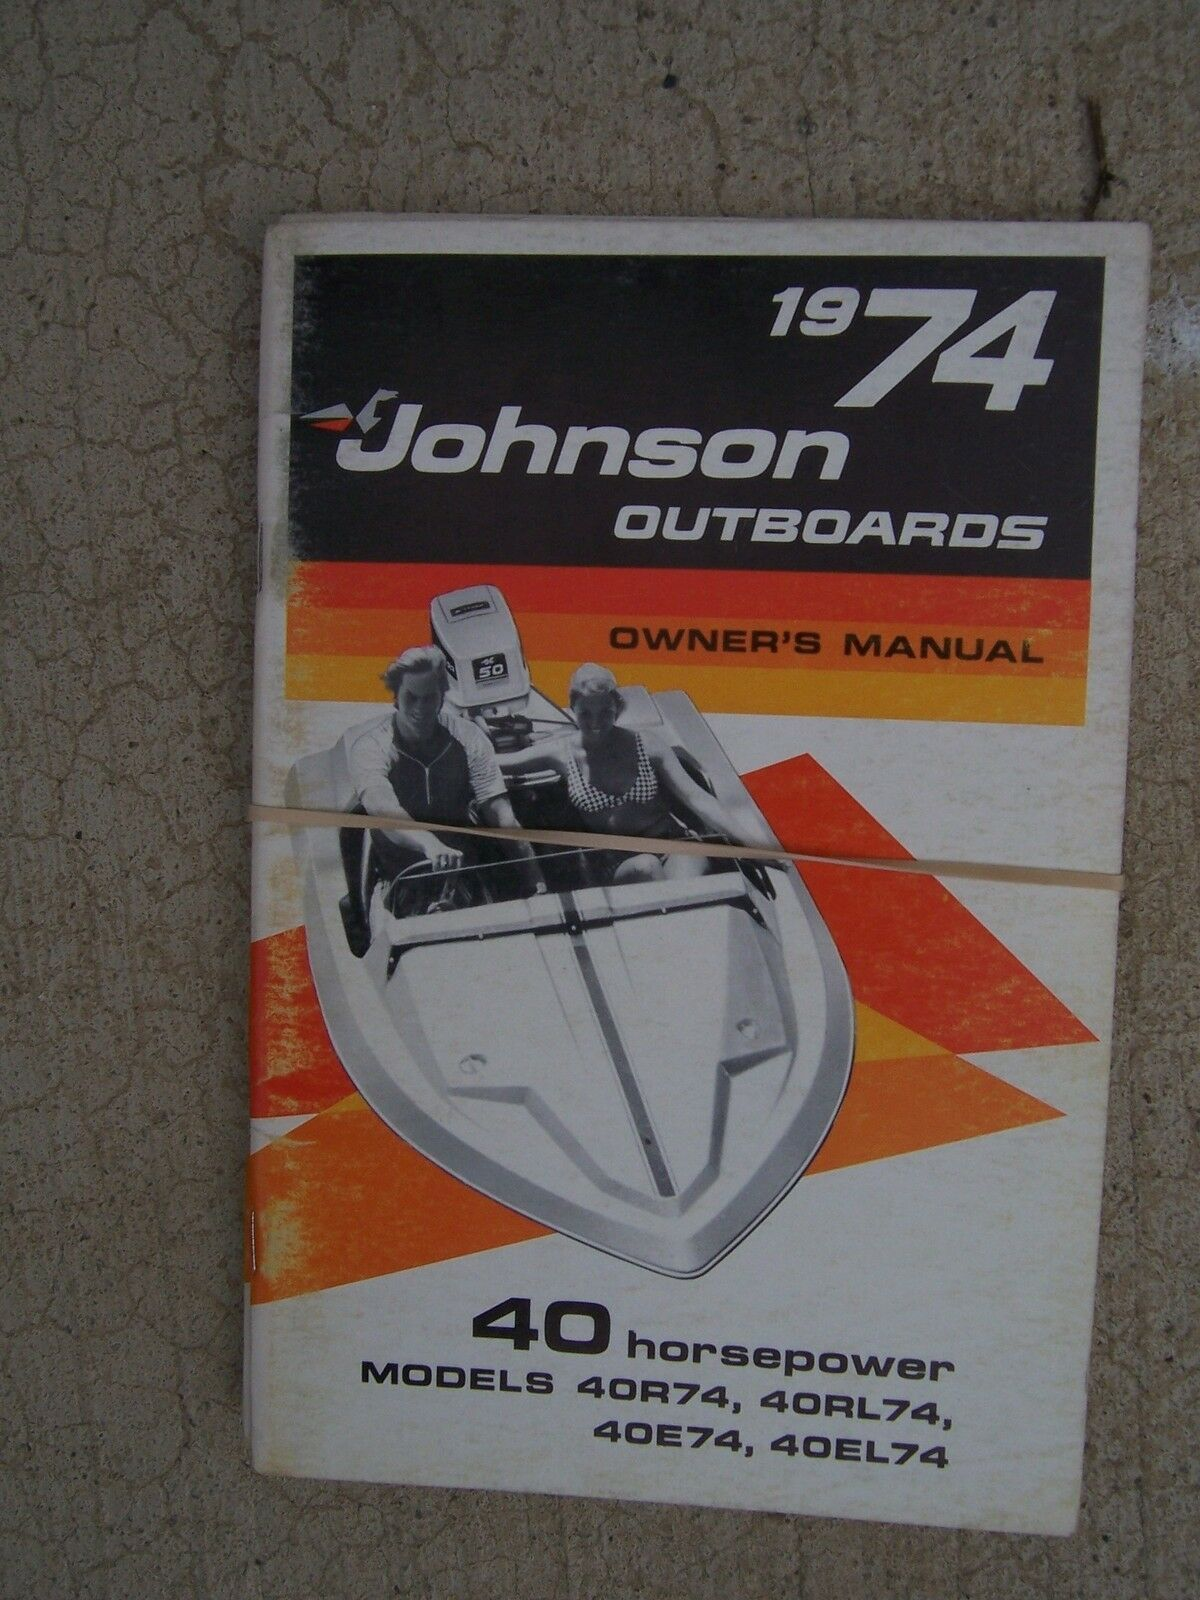 1974 Johnson 40 HP Outboard Motor Owner Manual 40R74 40RL74 40E74 40EL74  Boat S 1 of 1Only 1 available ...